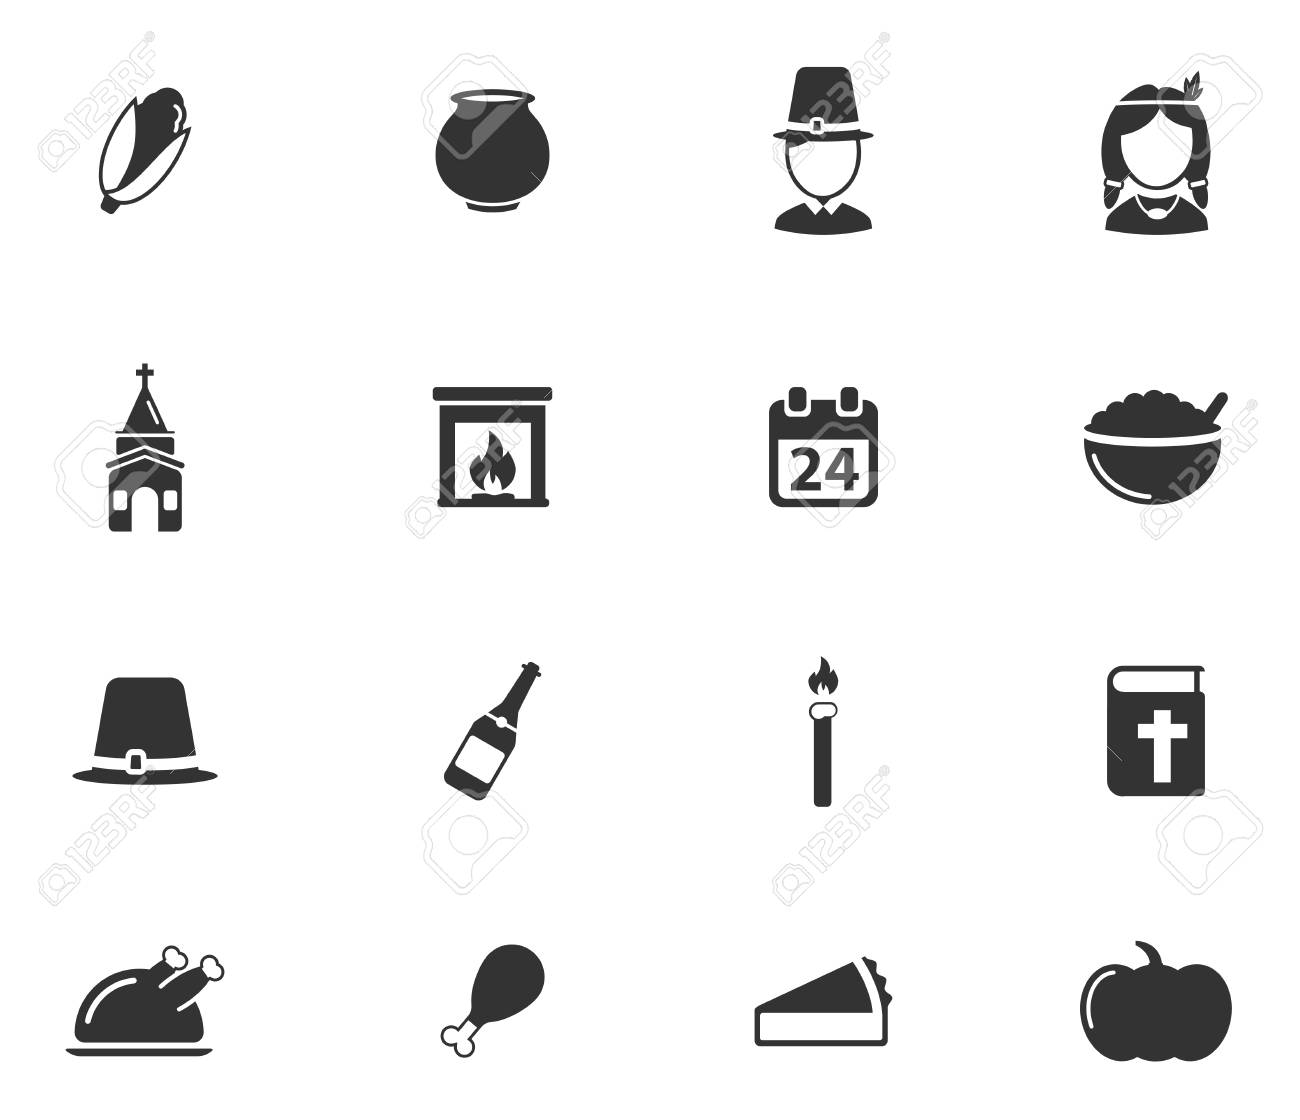 Thanksgiving Simply Symbols For Web Icons Royalty Free Cliparts